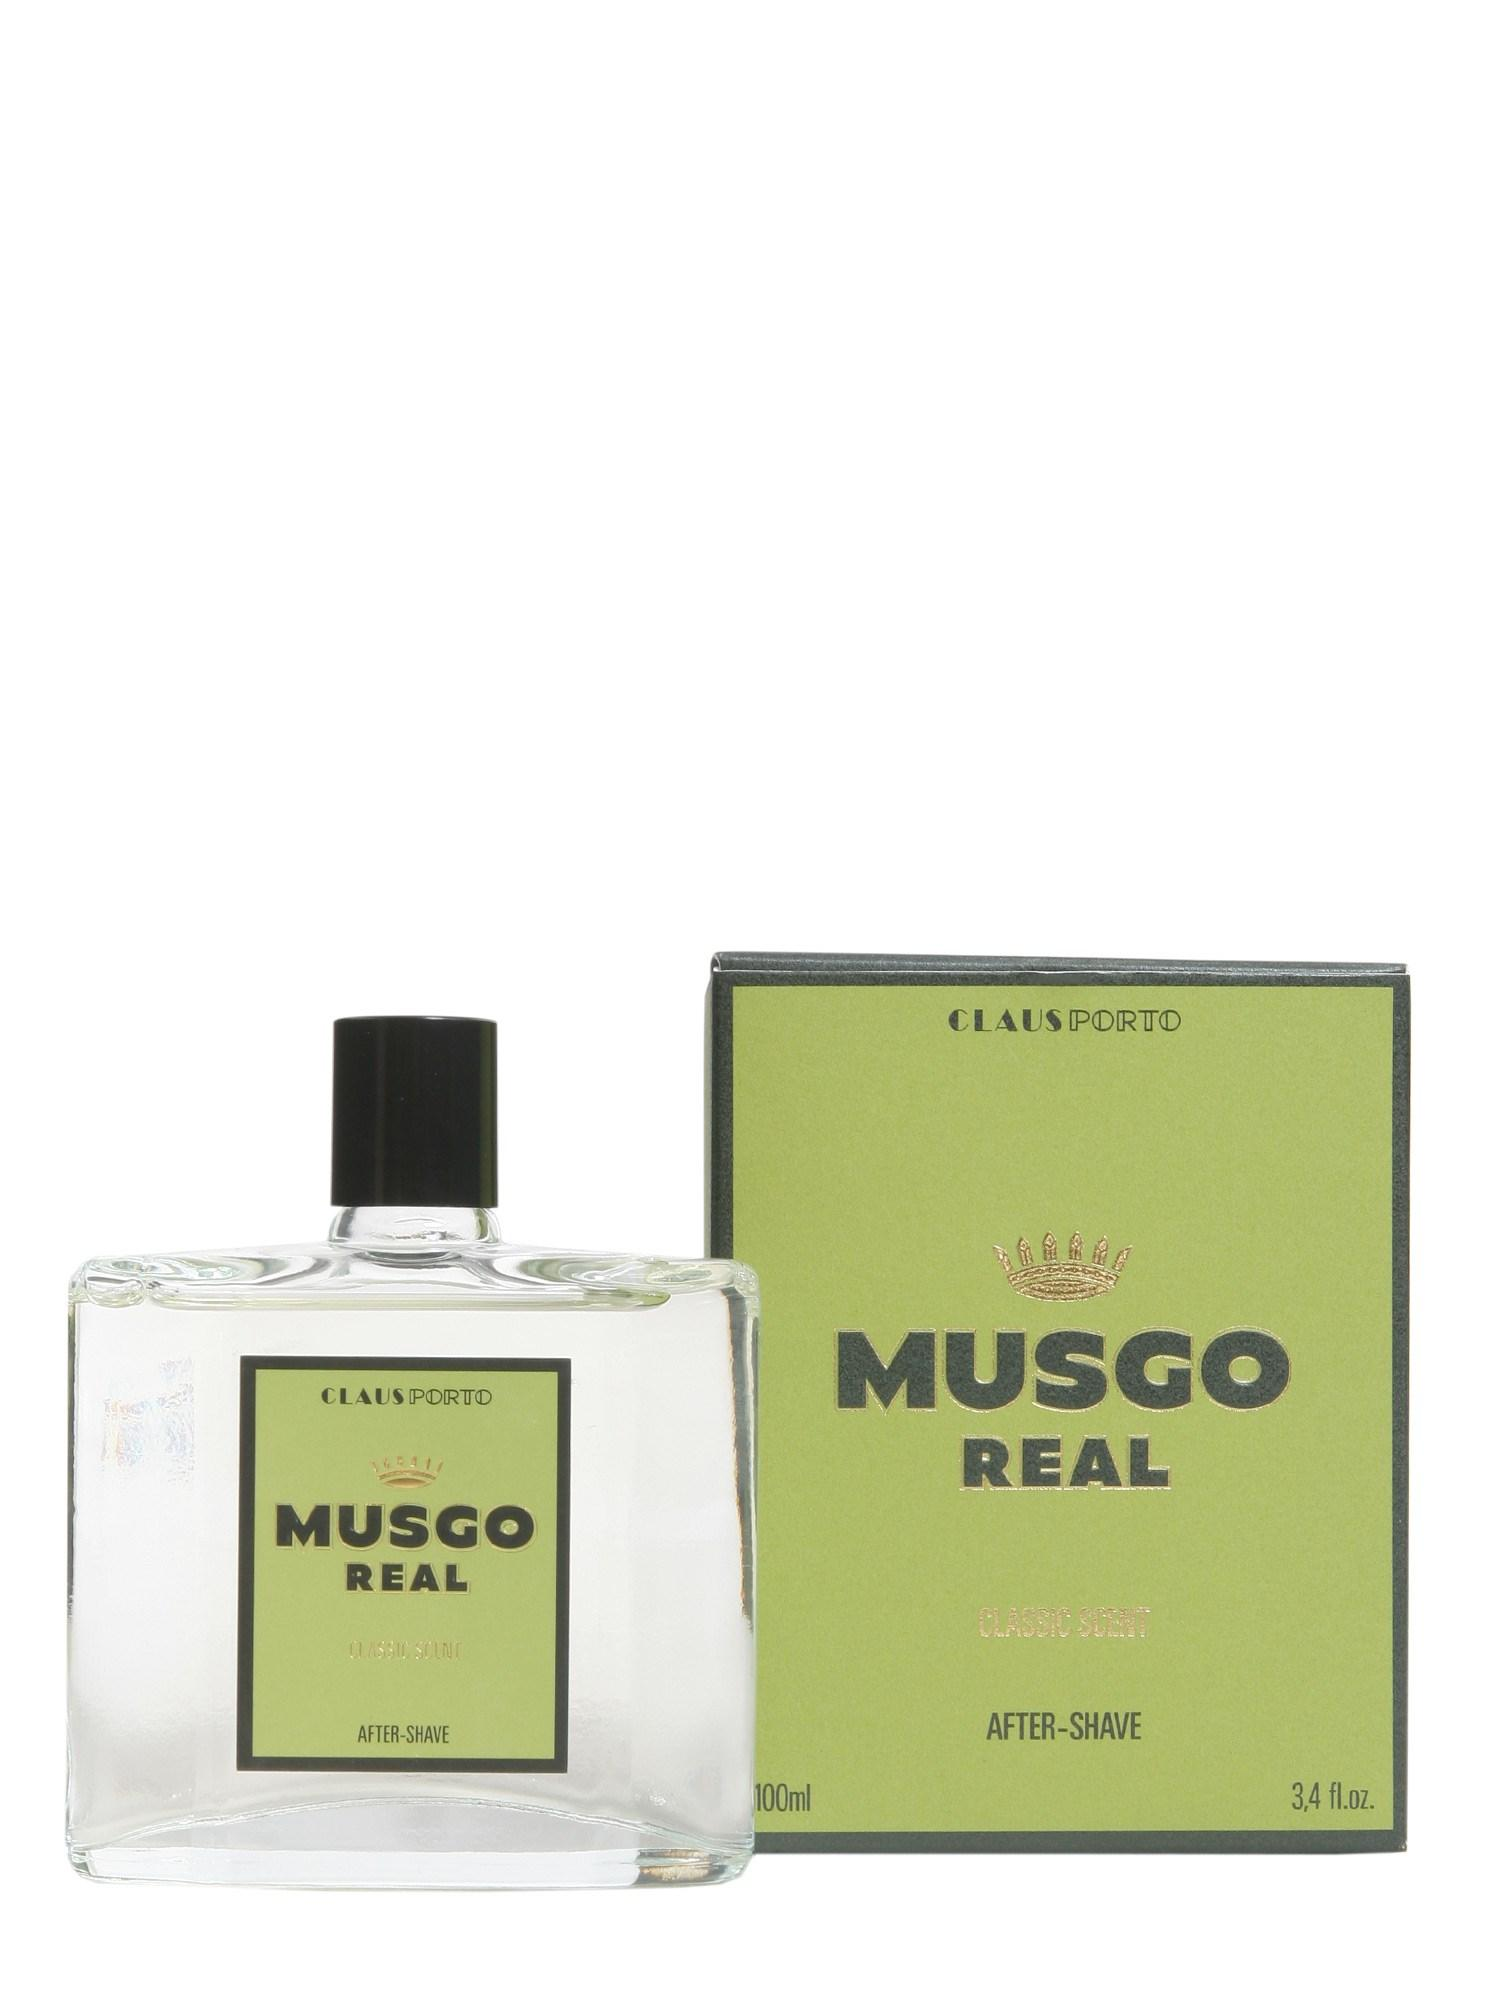 Musgo Real Classic Scent Splash Aftershave In White